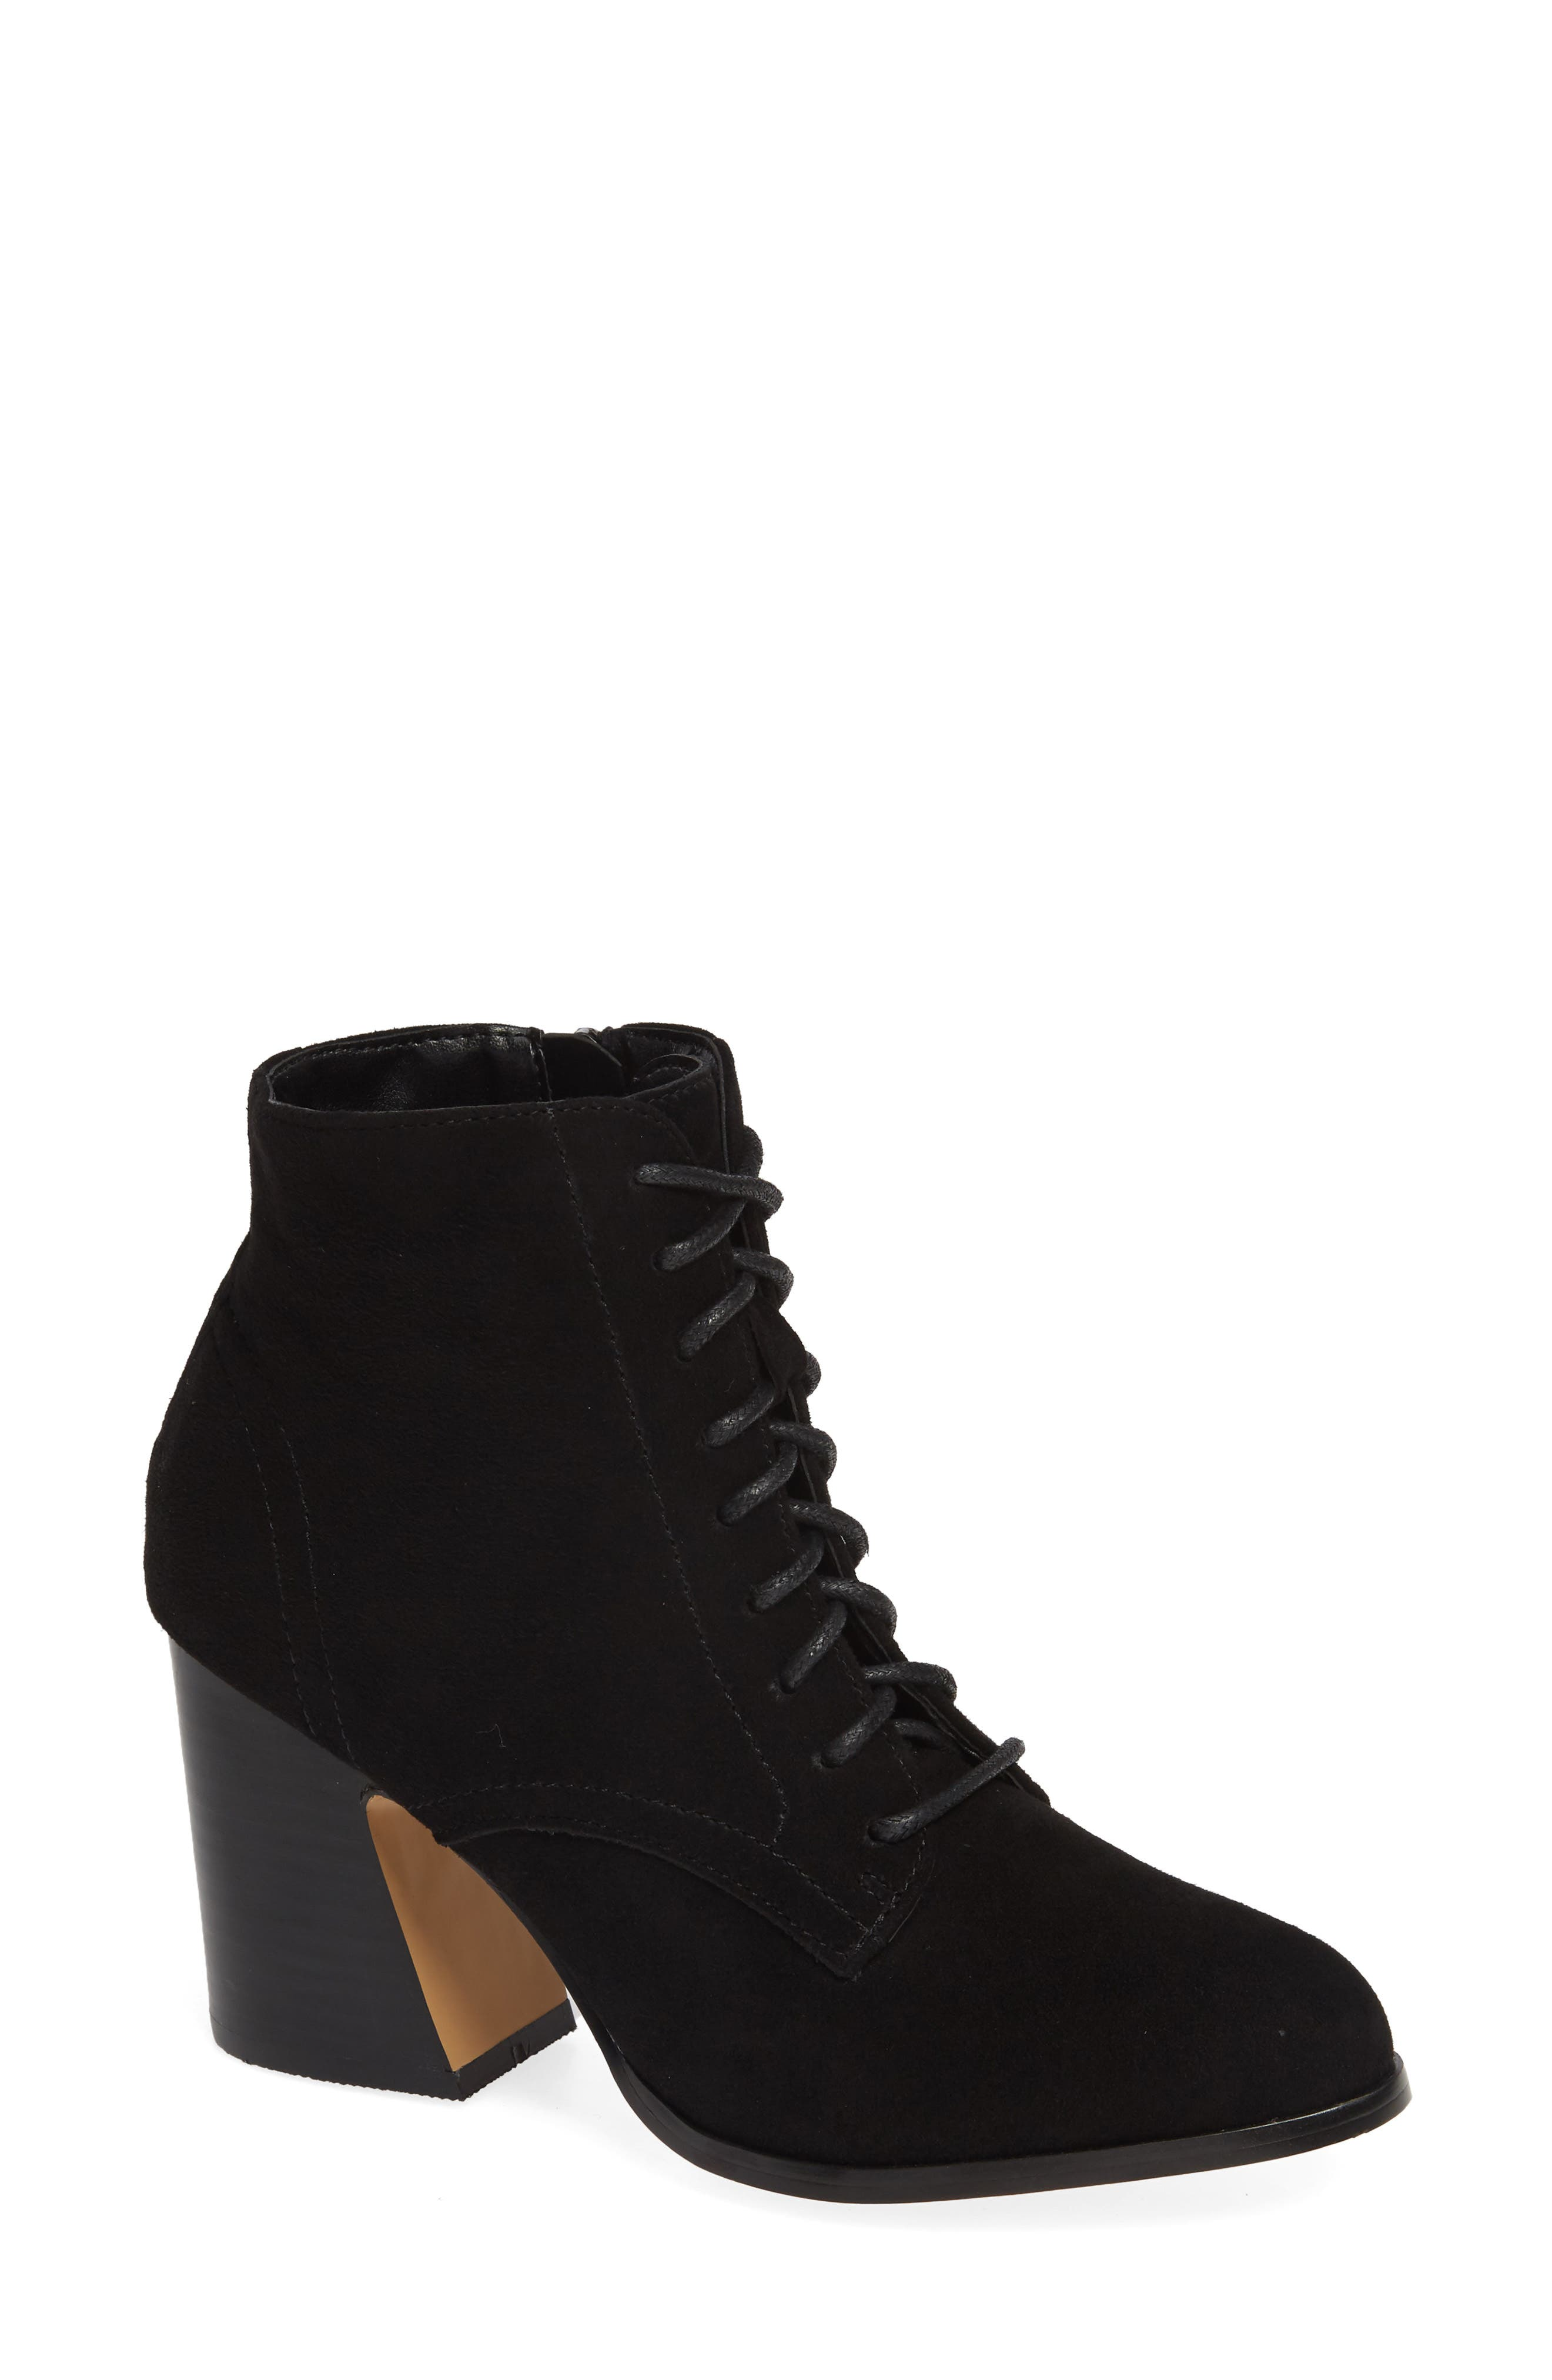 Kensie Smith Lace-Up Bootie, Black